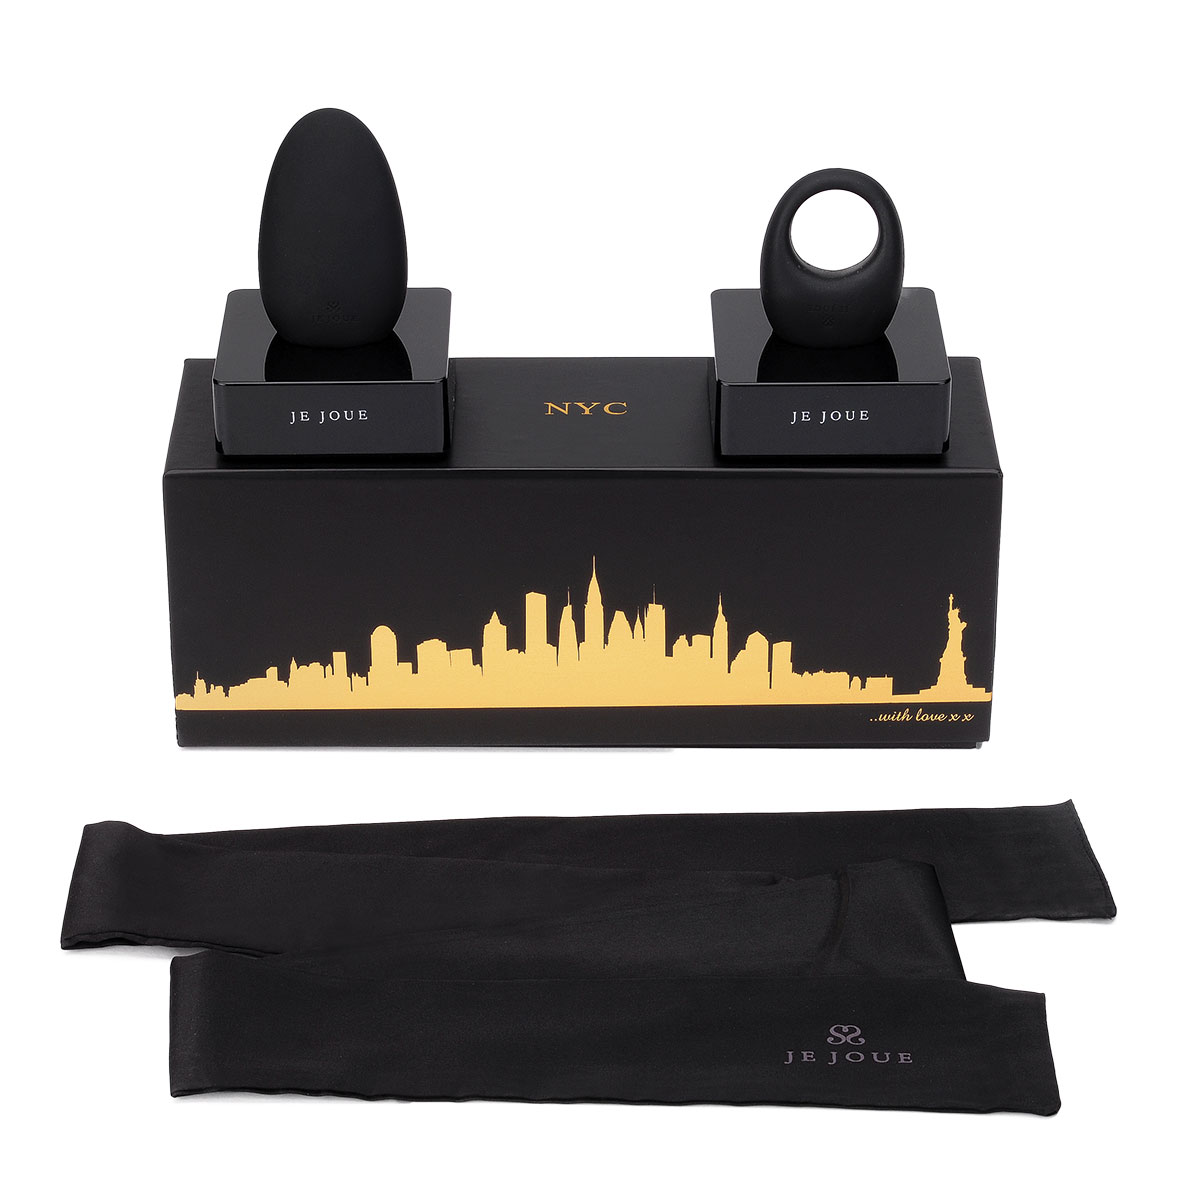 Je joue new york gift set for Gifts for new yorkers